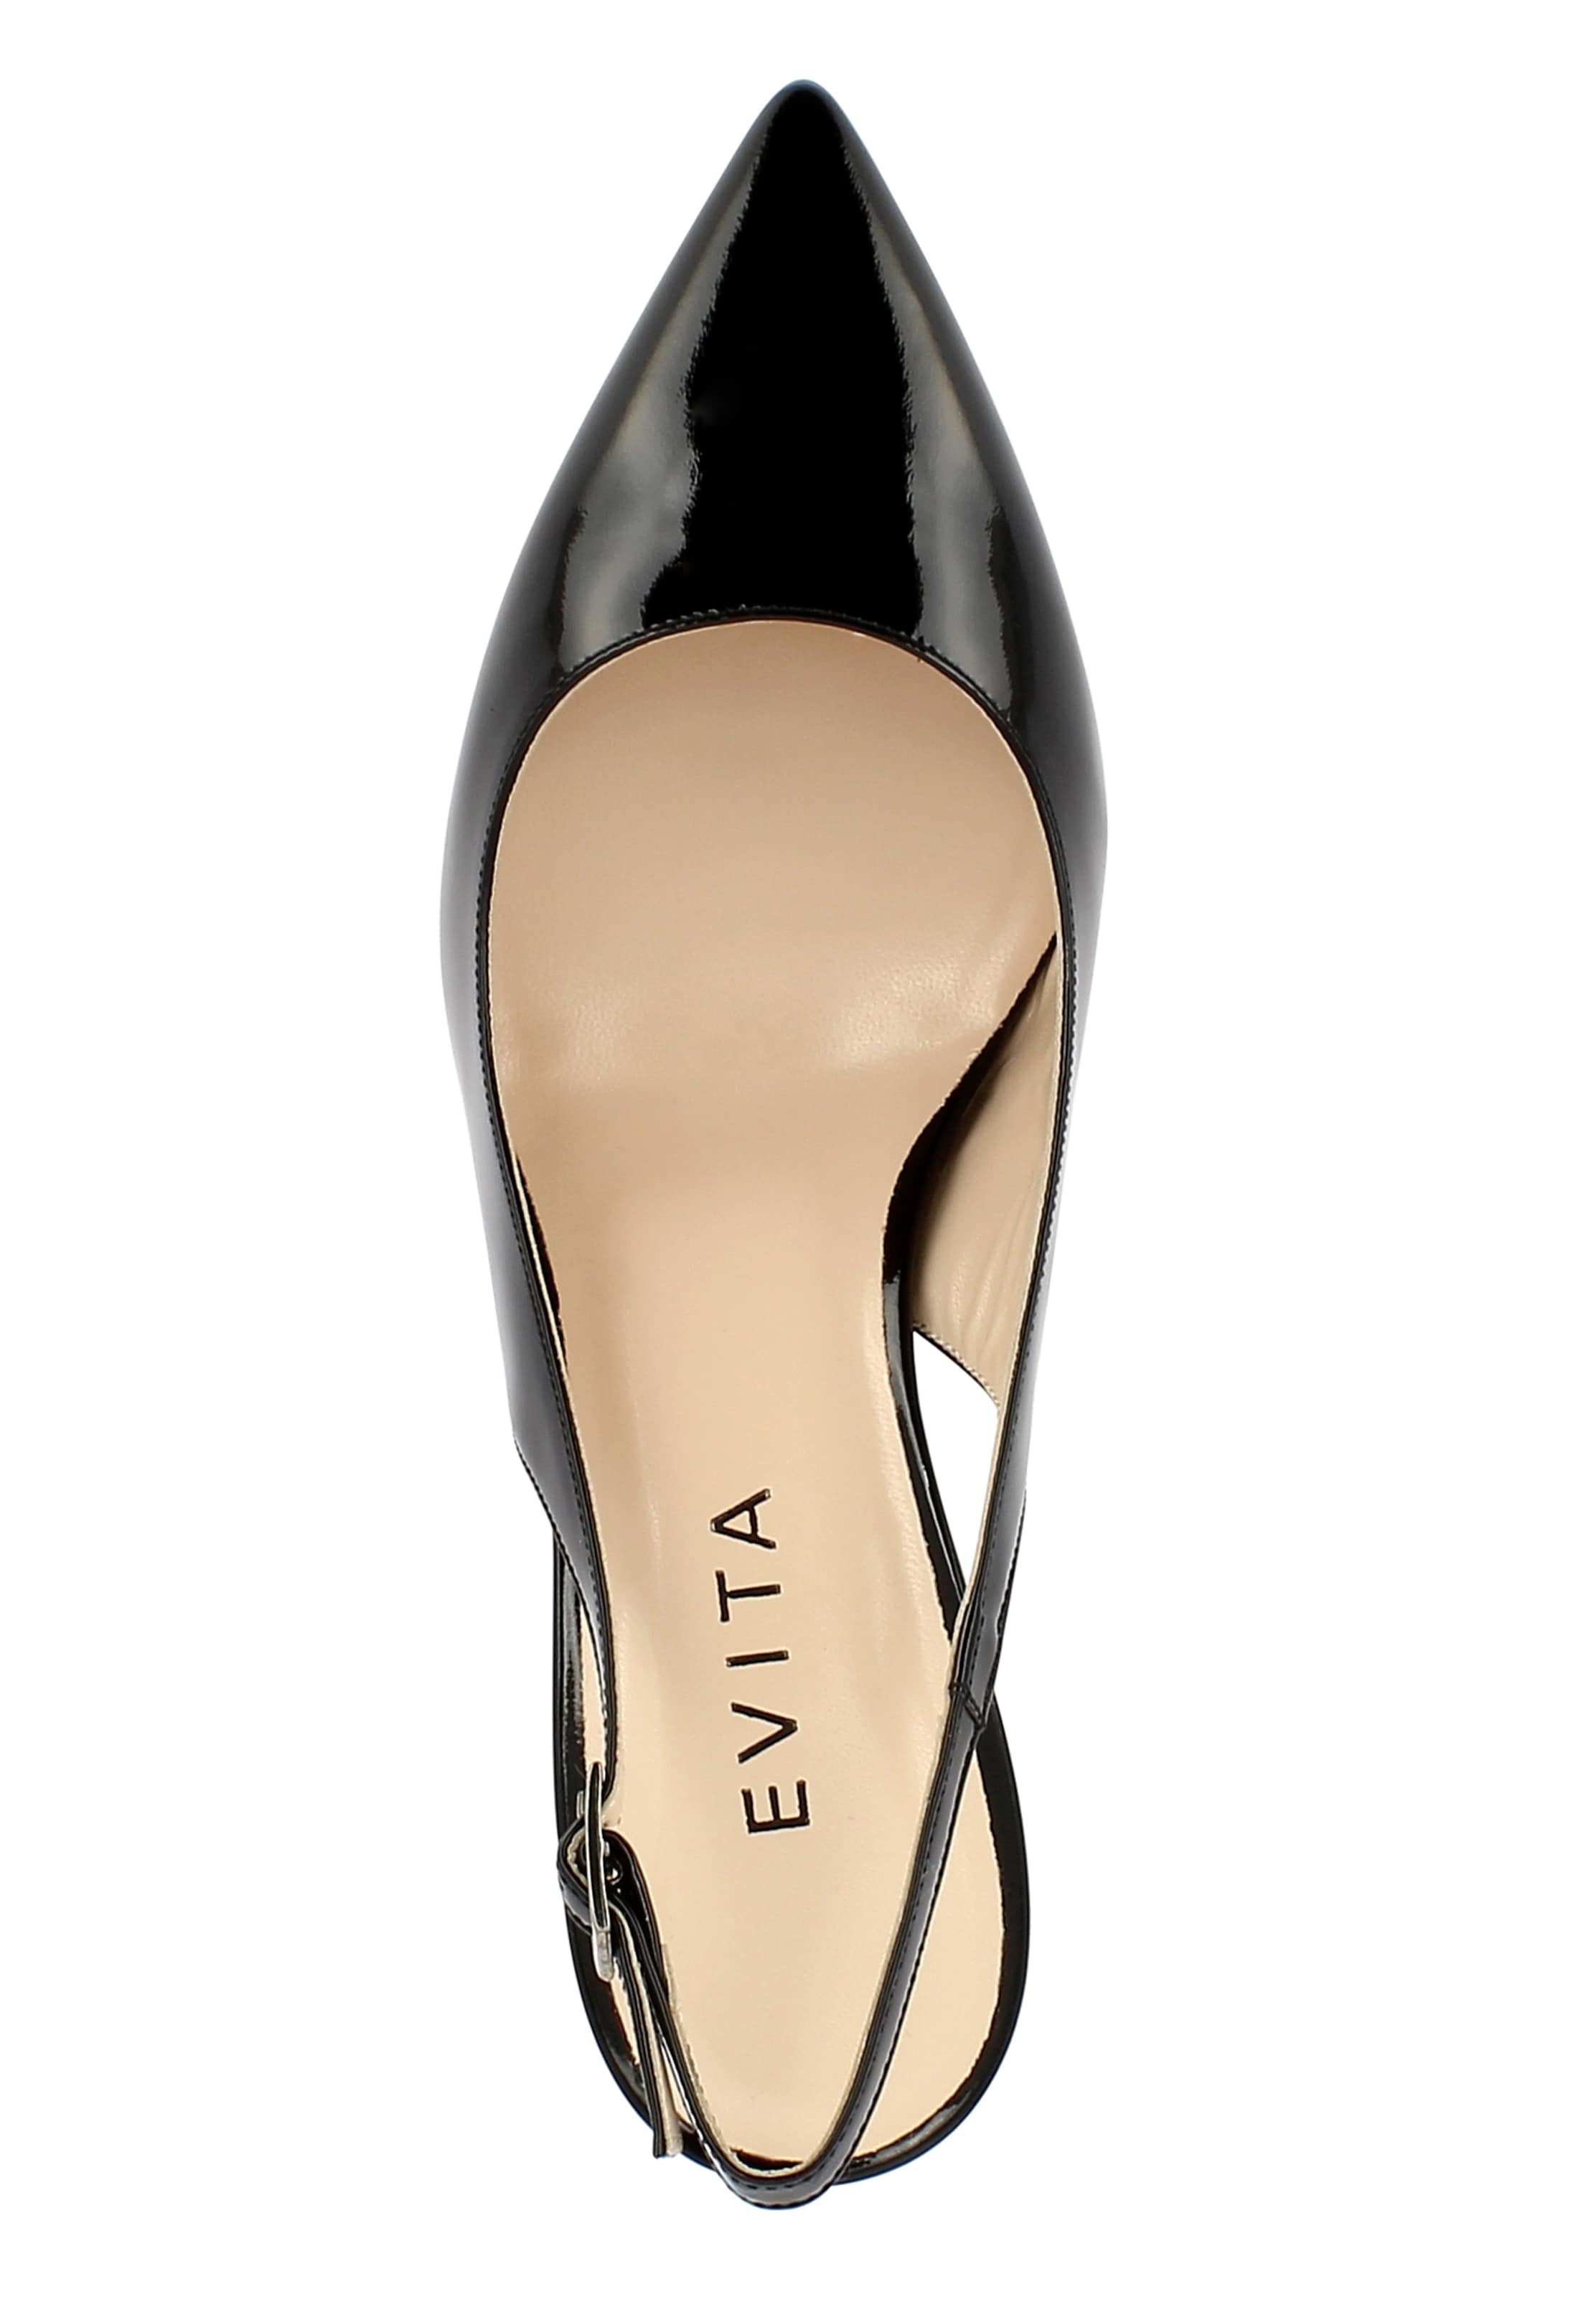 EVITA Sling Pumps Outlet-Store Online aymK4wT0ow